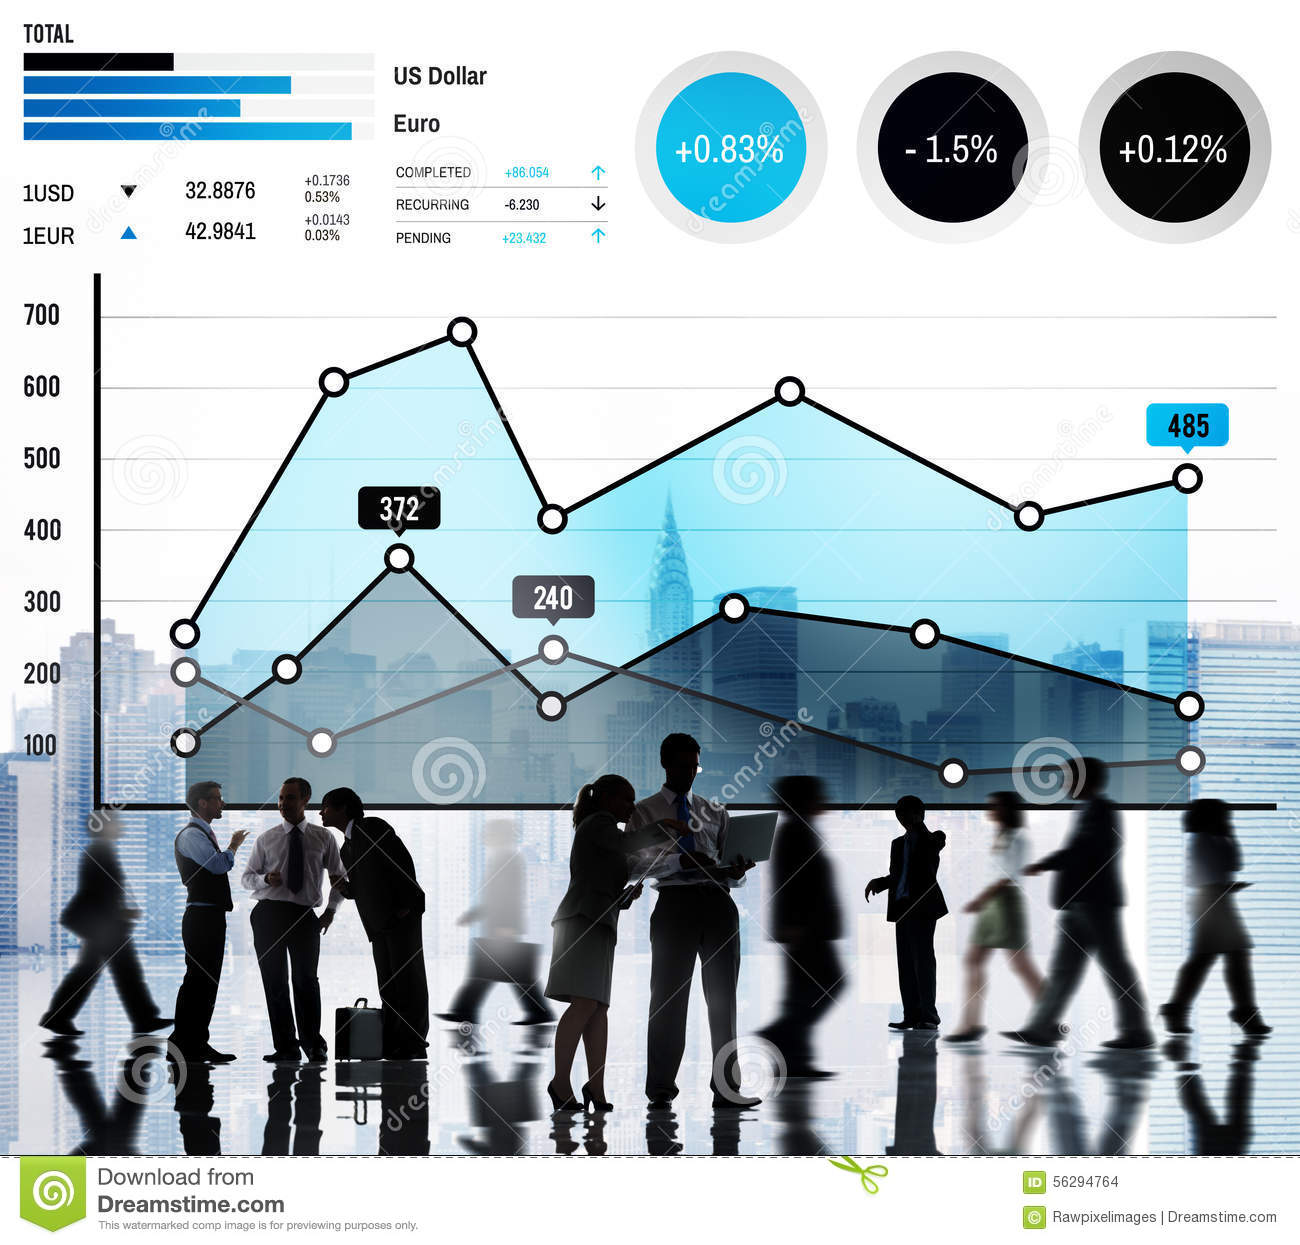 an analysis of the growth of nys business Beauty salon, hair salon business overview, market research & trends, business plan template demand is driven by demographics and population growth the profitability of individual companies depends on technical expertise and marketing skills.